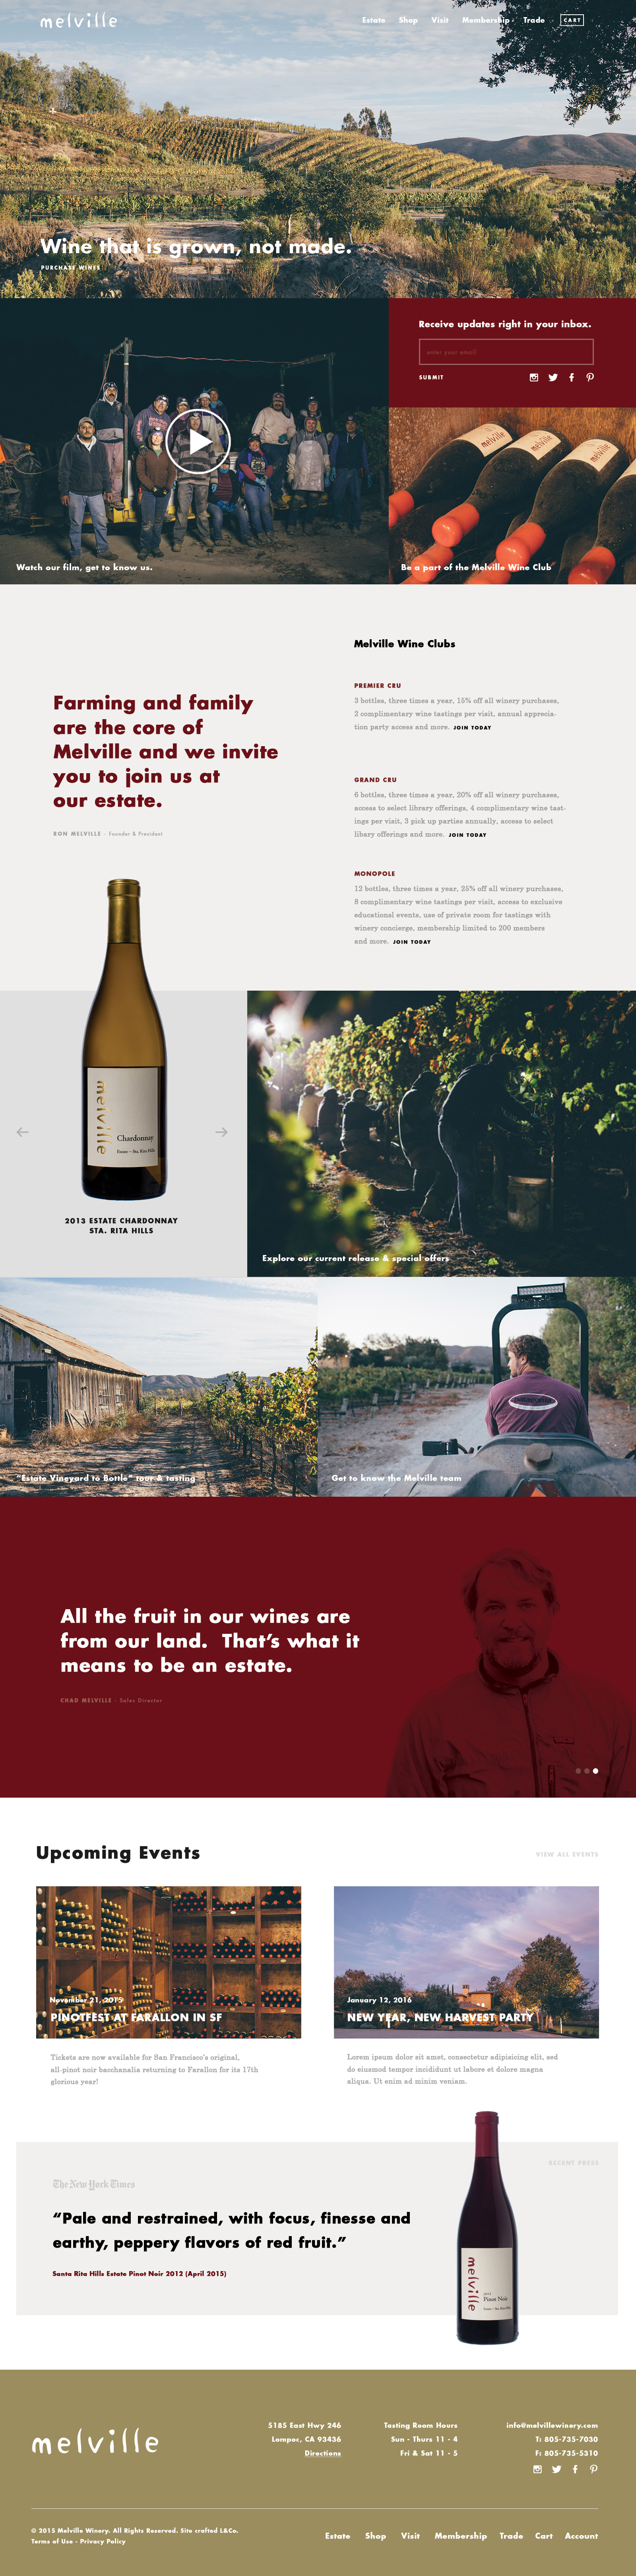 Leo-Basica-design-melville-winery-web-design2